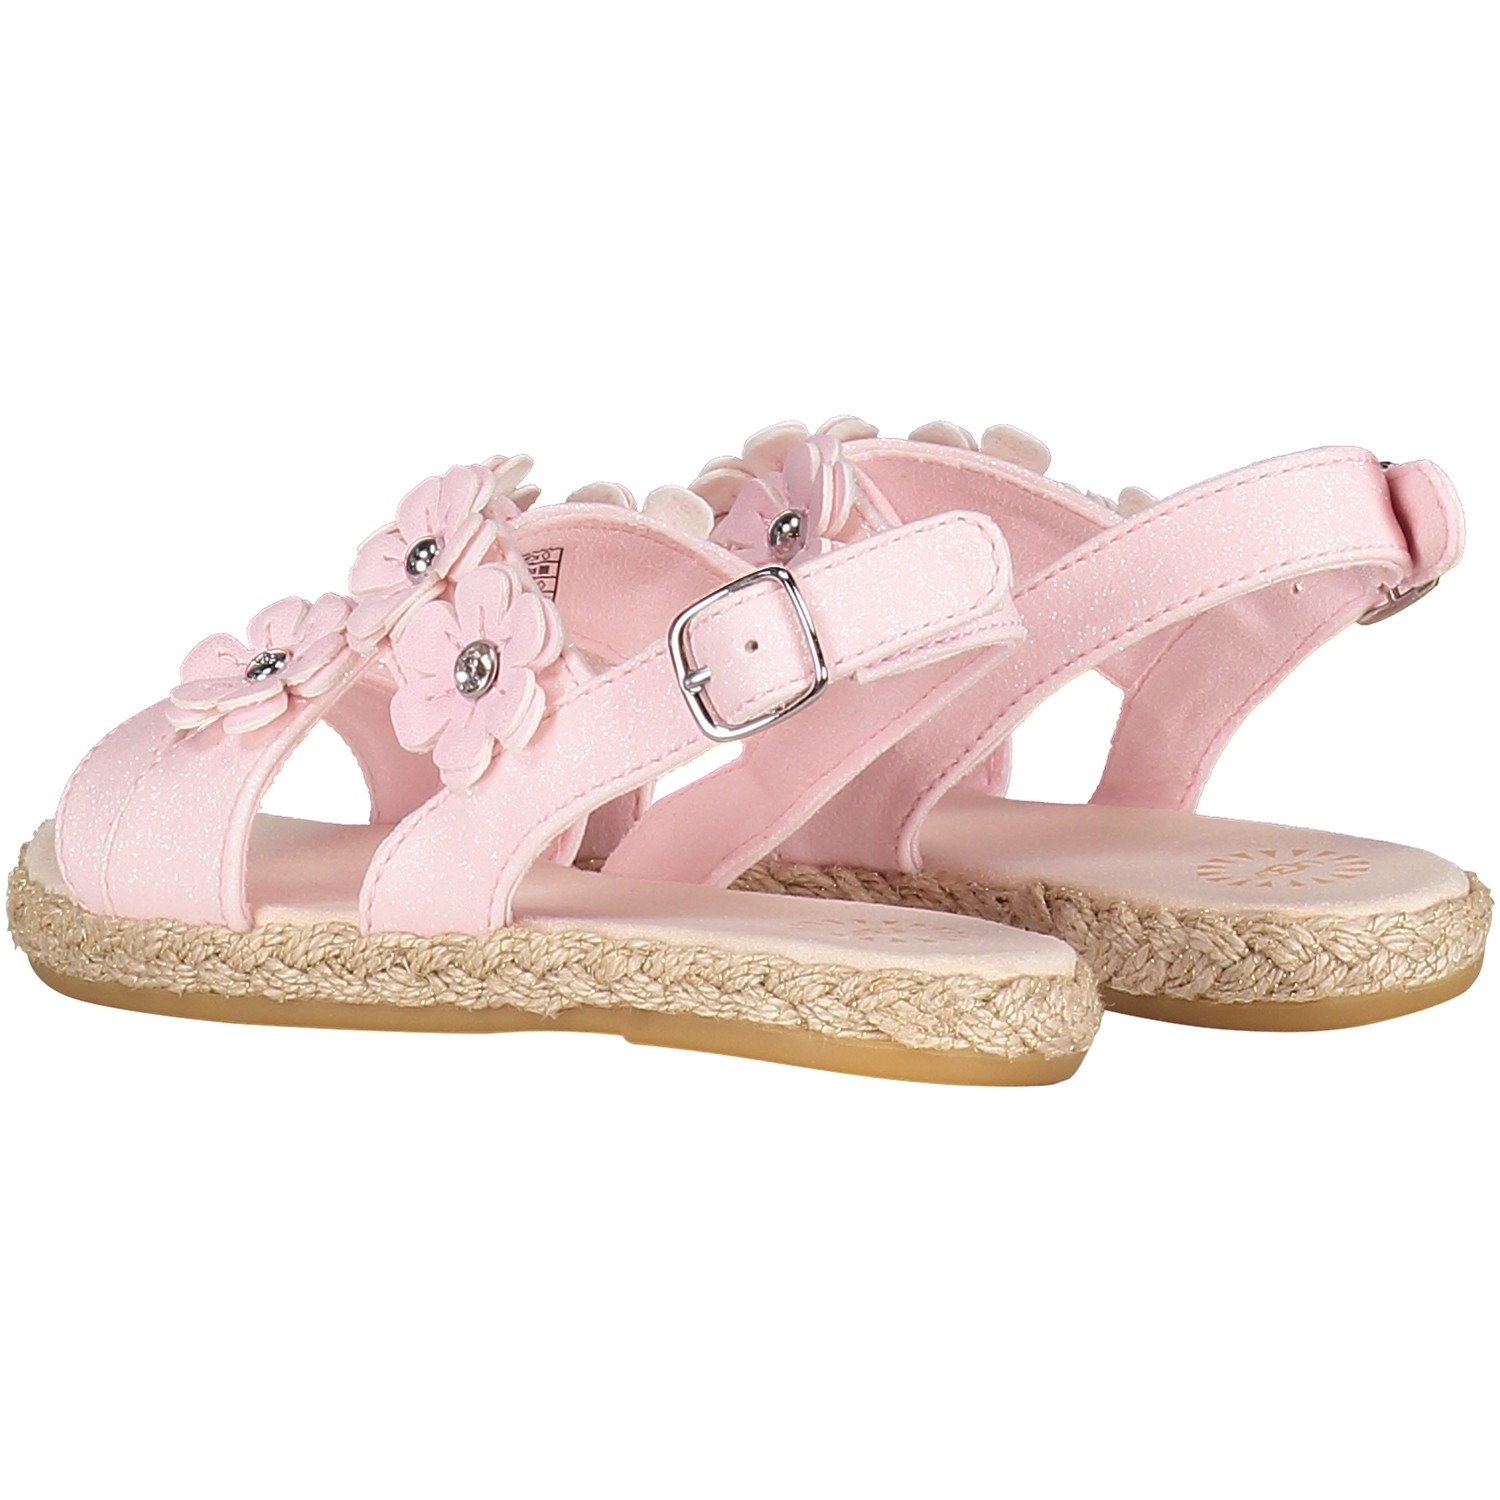 Picture of Ugg 1092421 kids sandal light pink